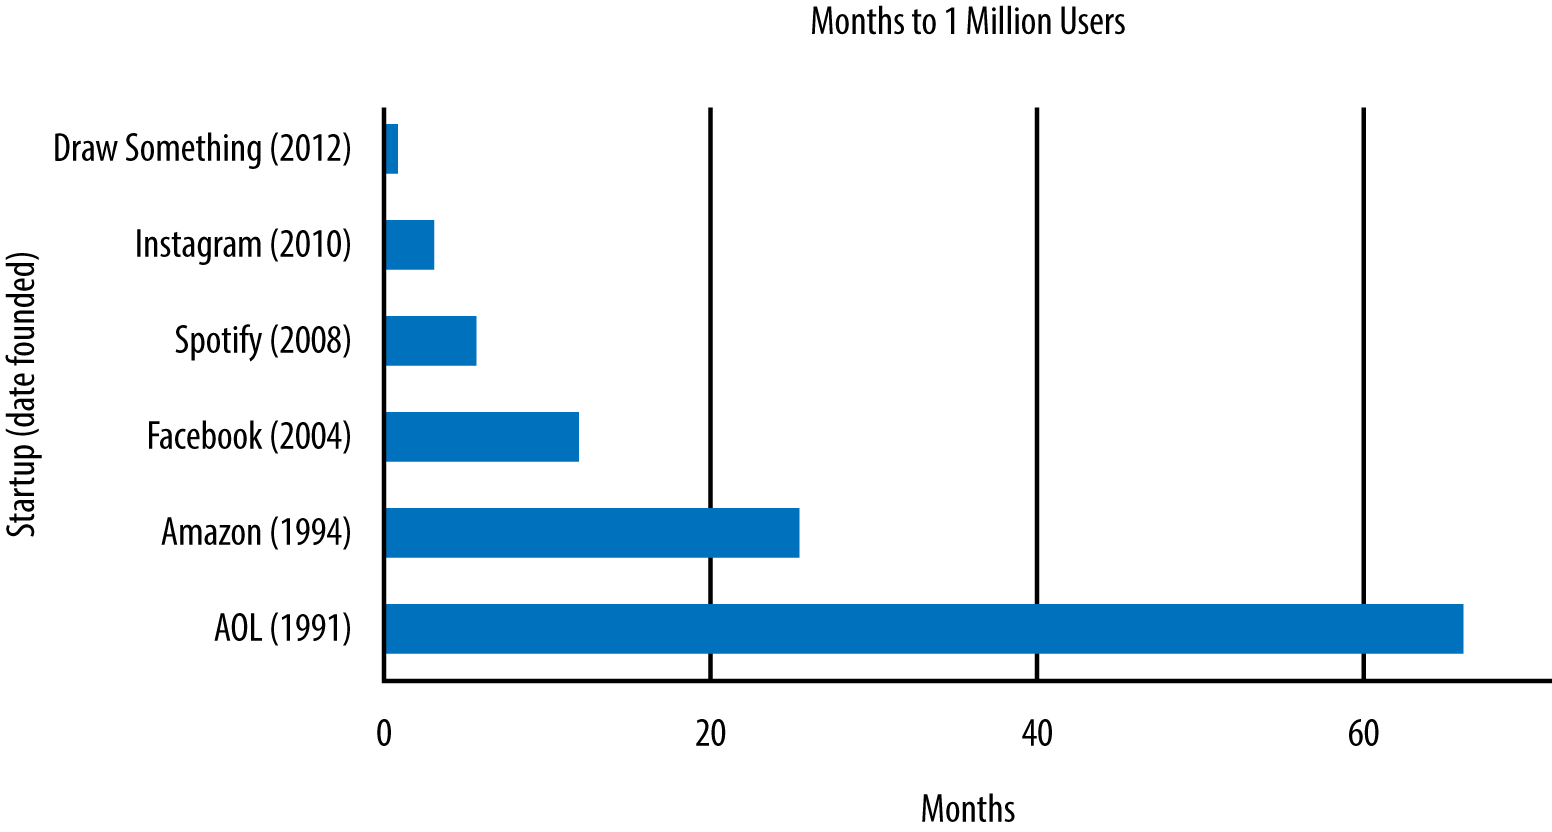 Months to 1 million users